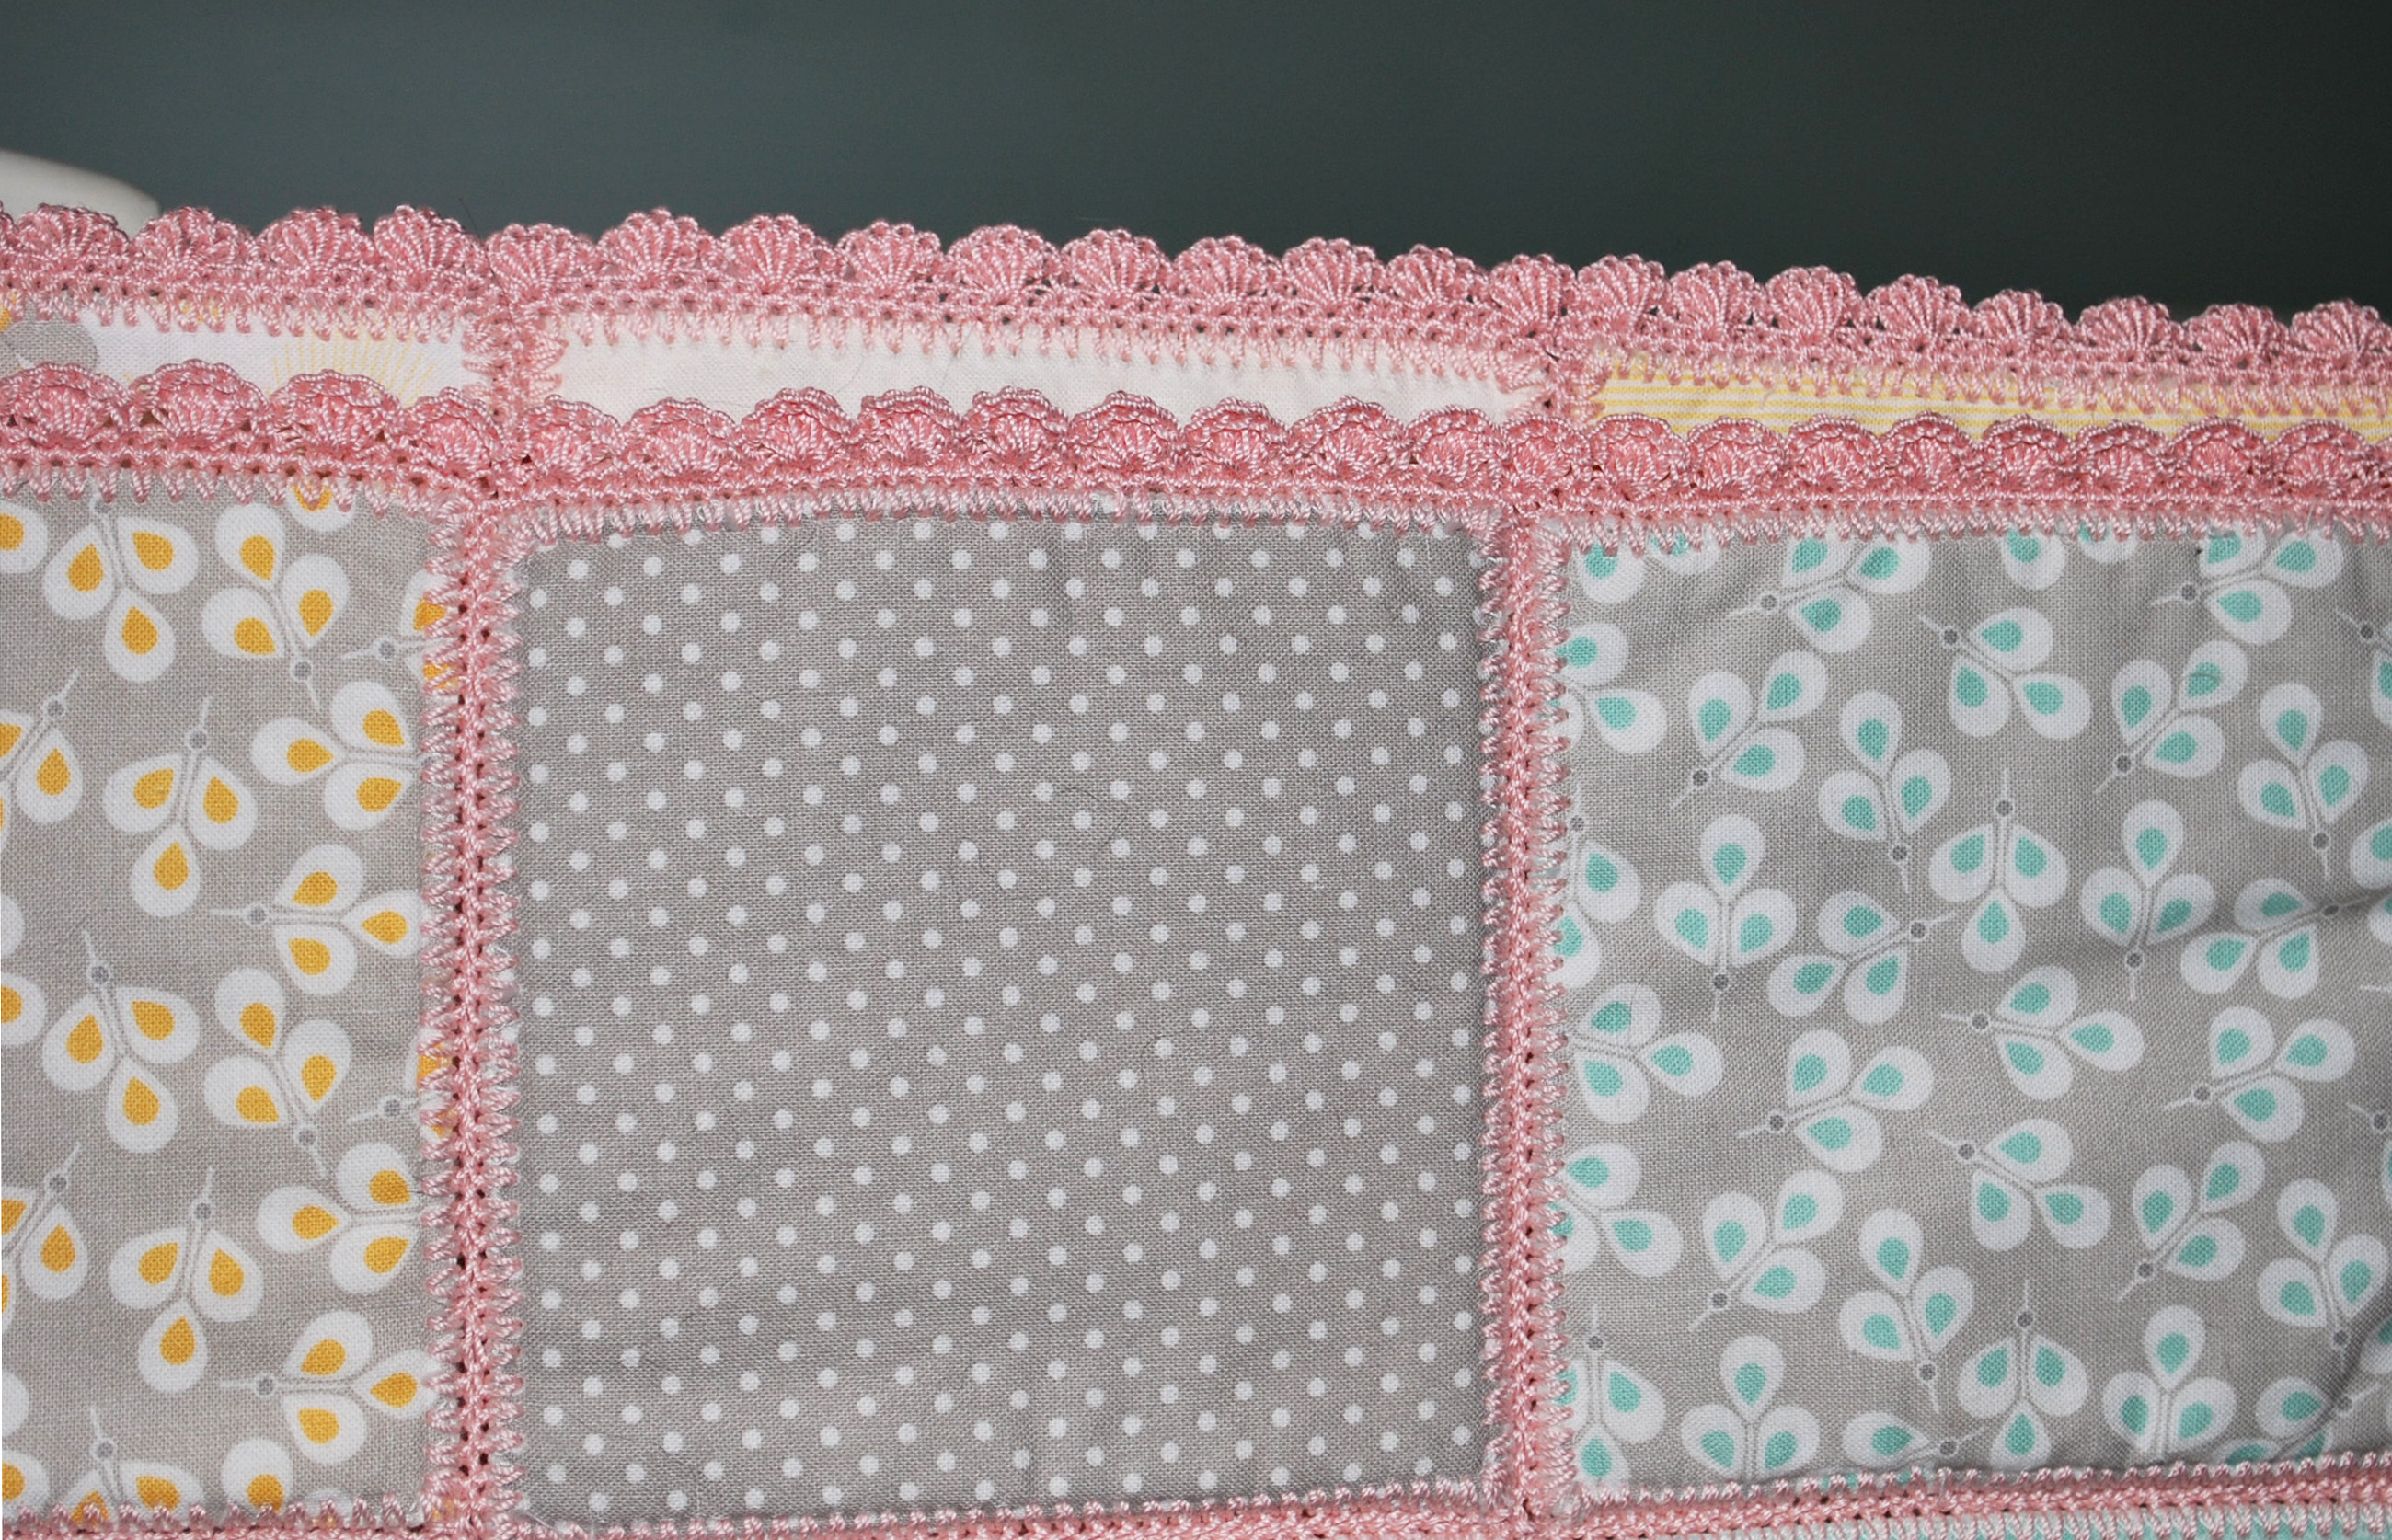 Crocheting A Baby Quilt : Crochet Baby Patchwork Sneak Peek - The Pipers Girls